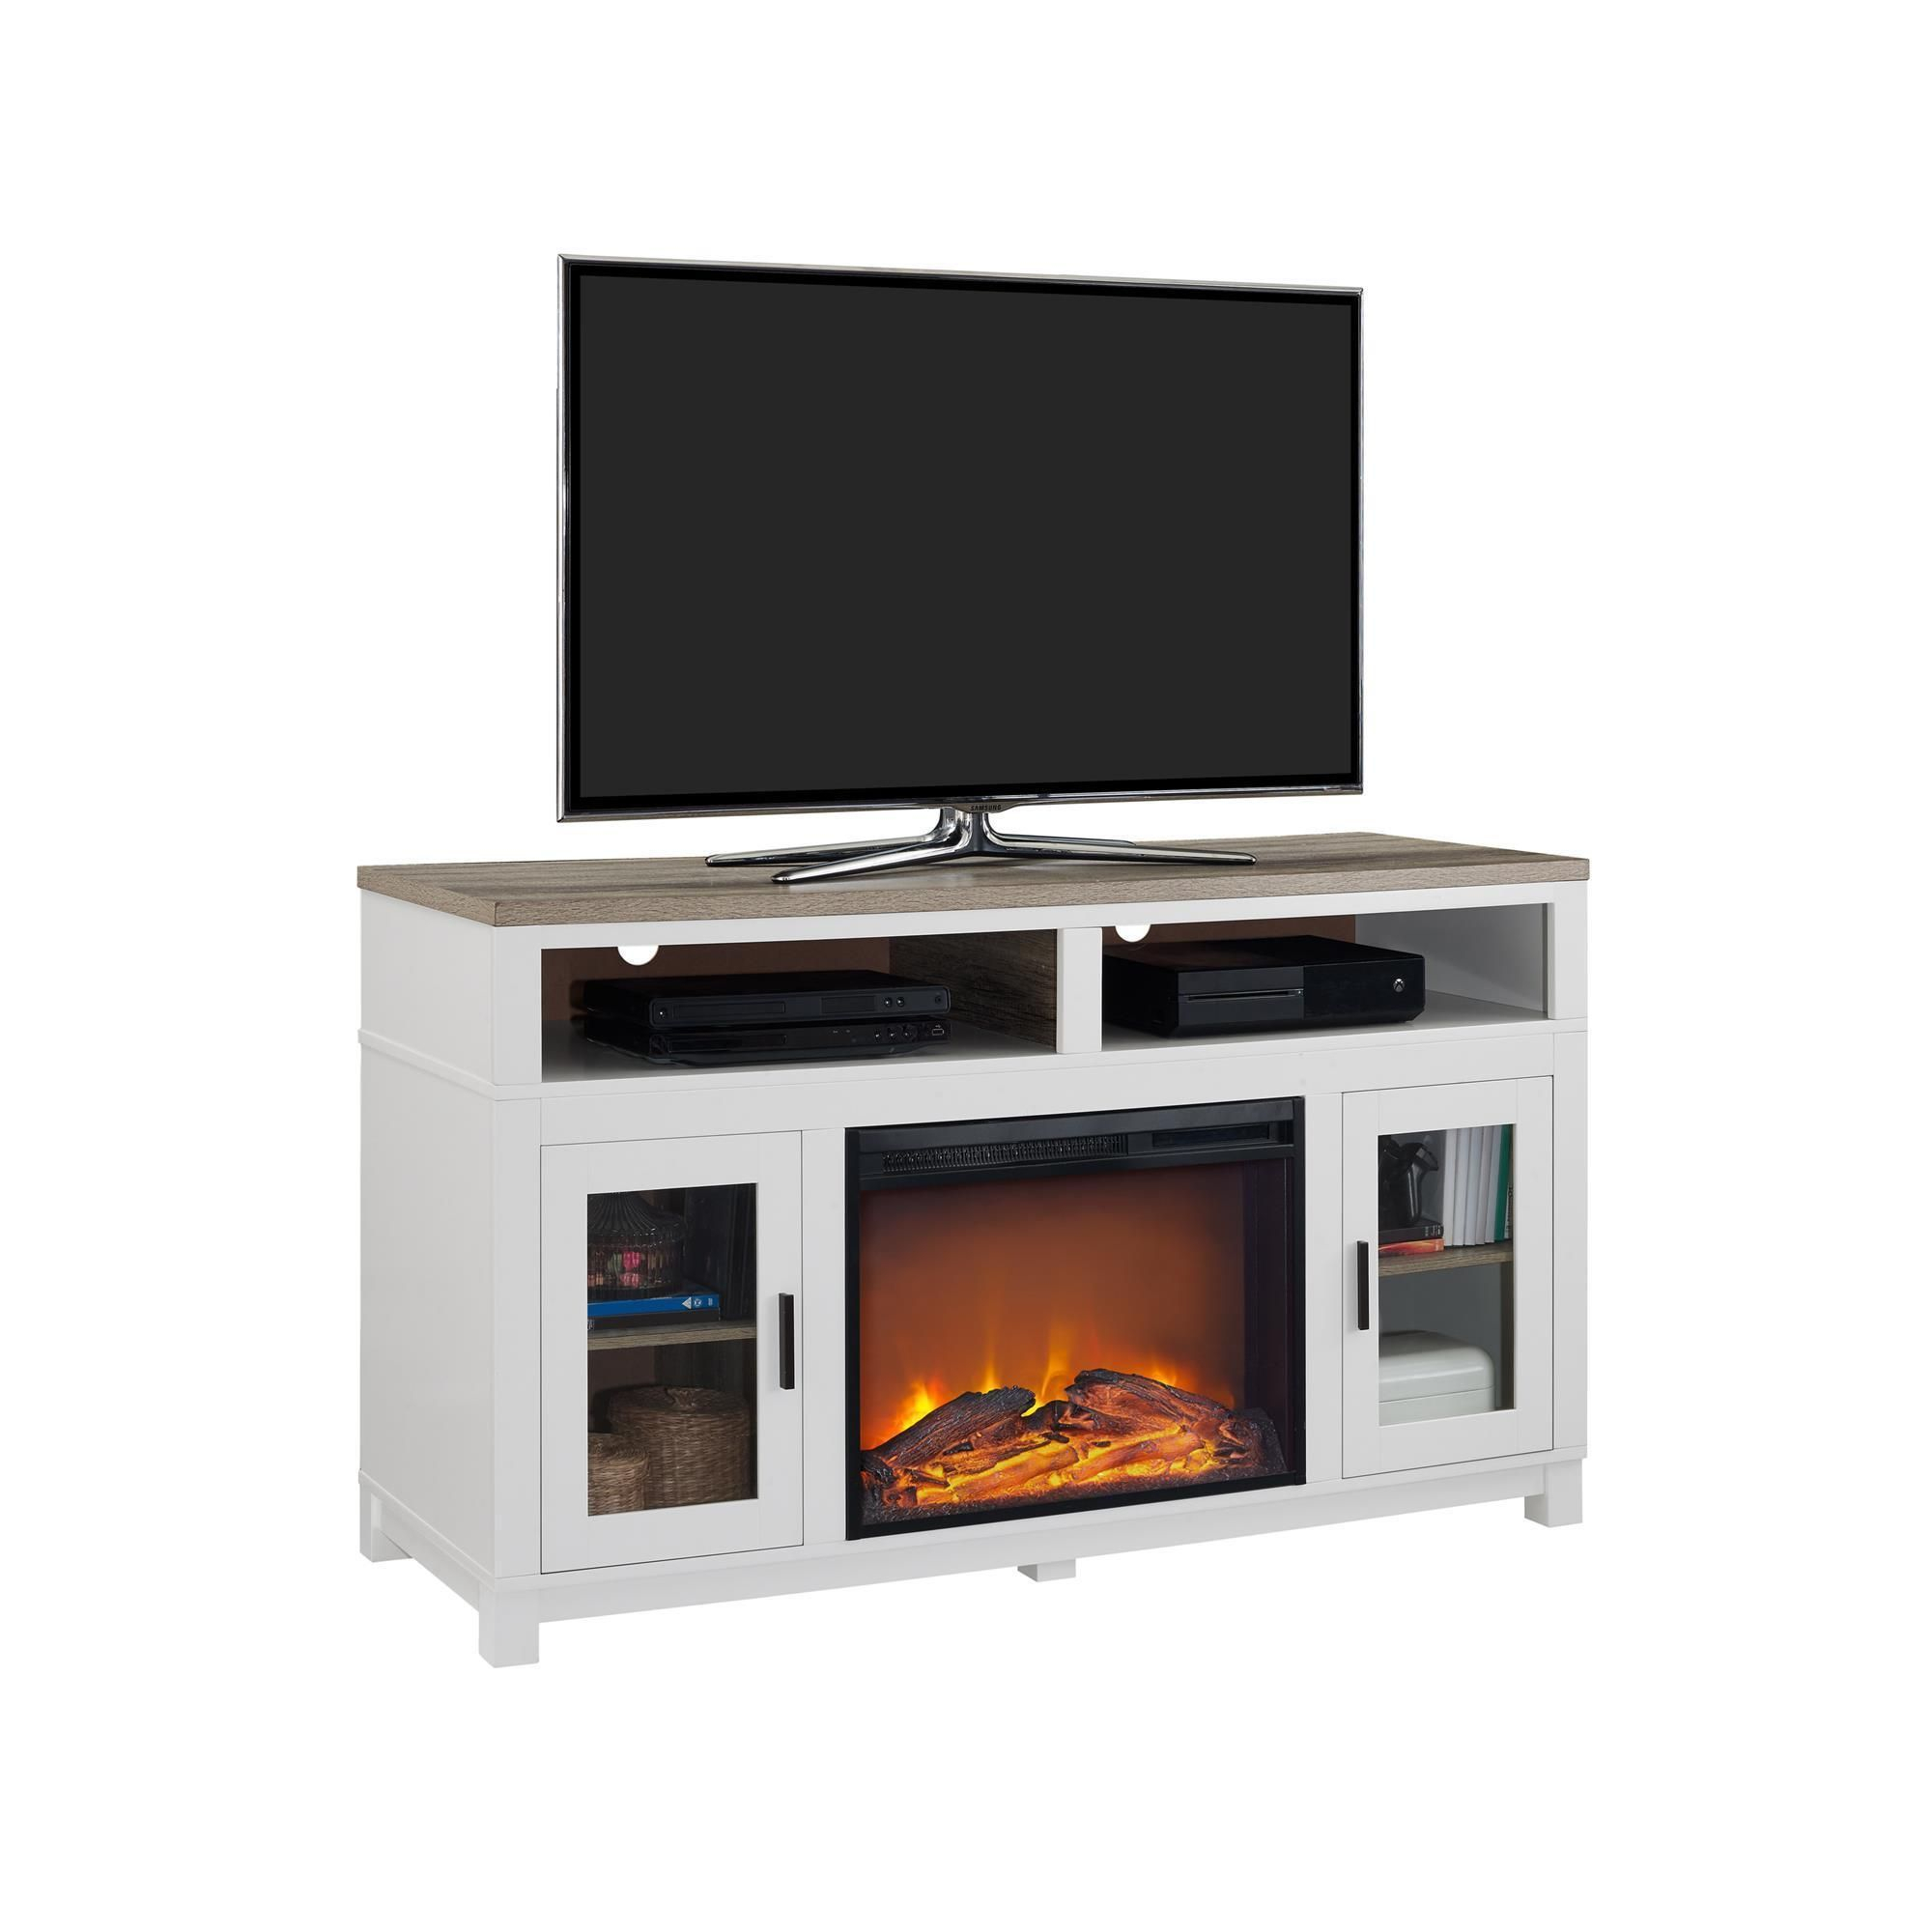 Ameriwood Home Carver Electric Fireplace Tv Stand For Tvs Up To 60 intended for Oxford 60 Inch Tv Stands (Image 1 of 30)